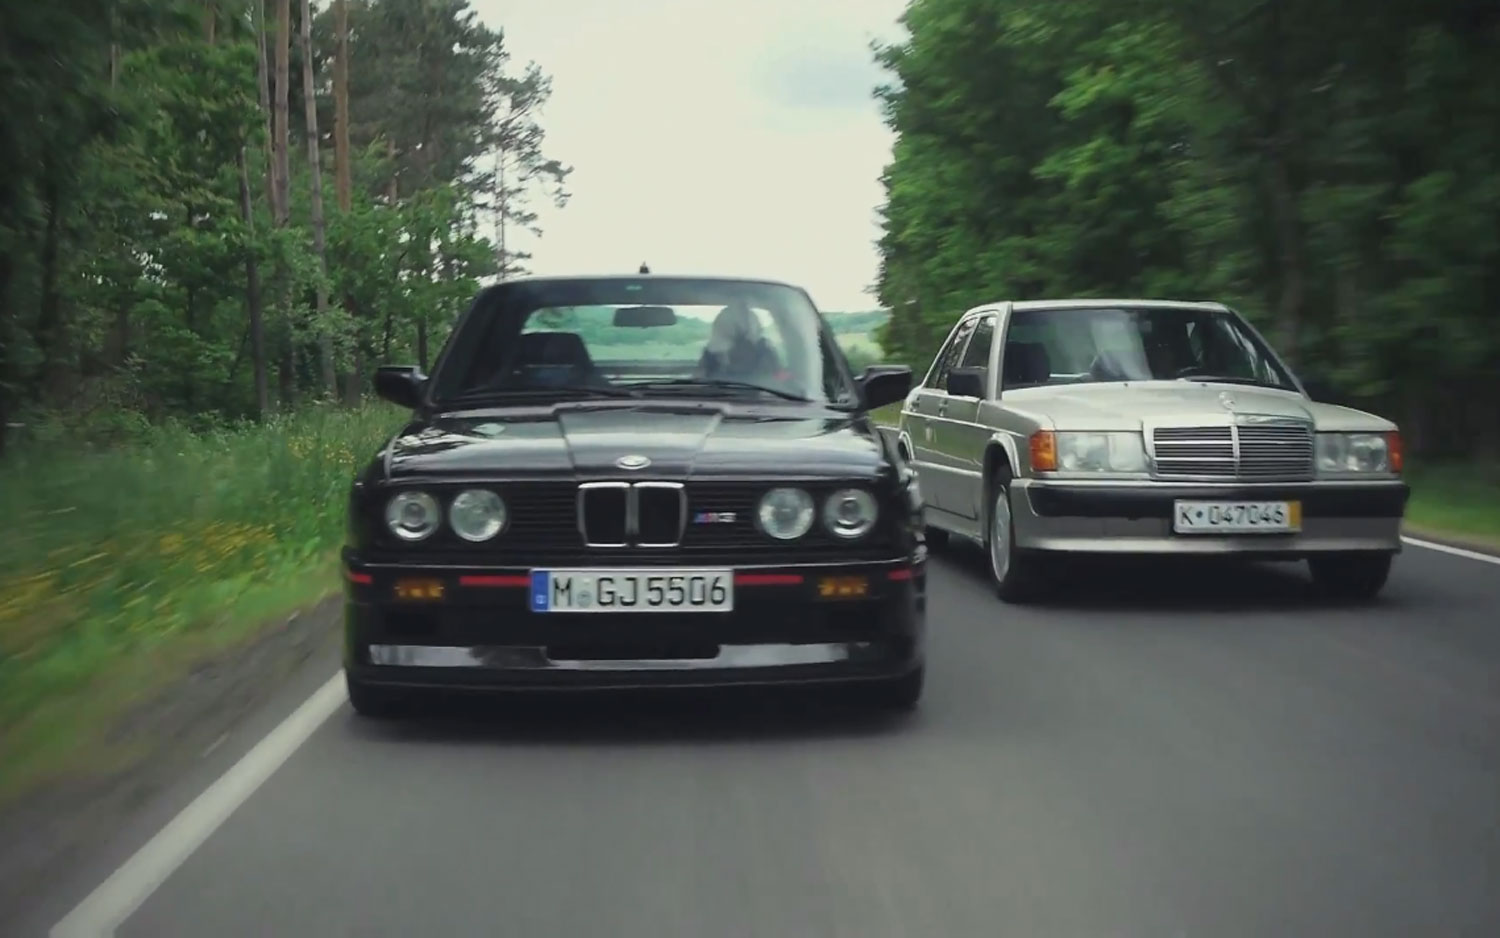 BMW E30 M3 And Mercedes Benz 190E 23 16 Front View In Motion1